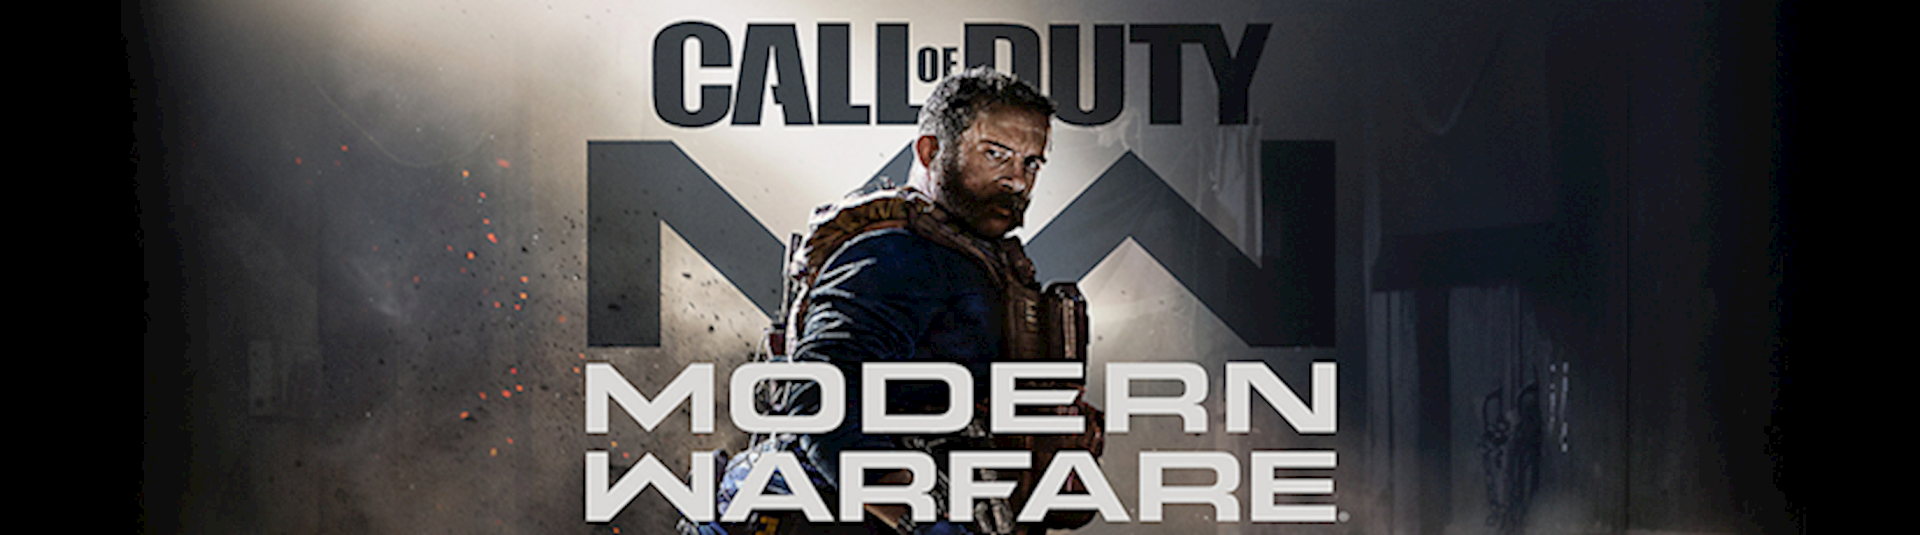 Call of Duty Modern Warfare Battle Royale Modu Geliyor Mu?